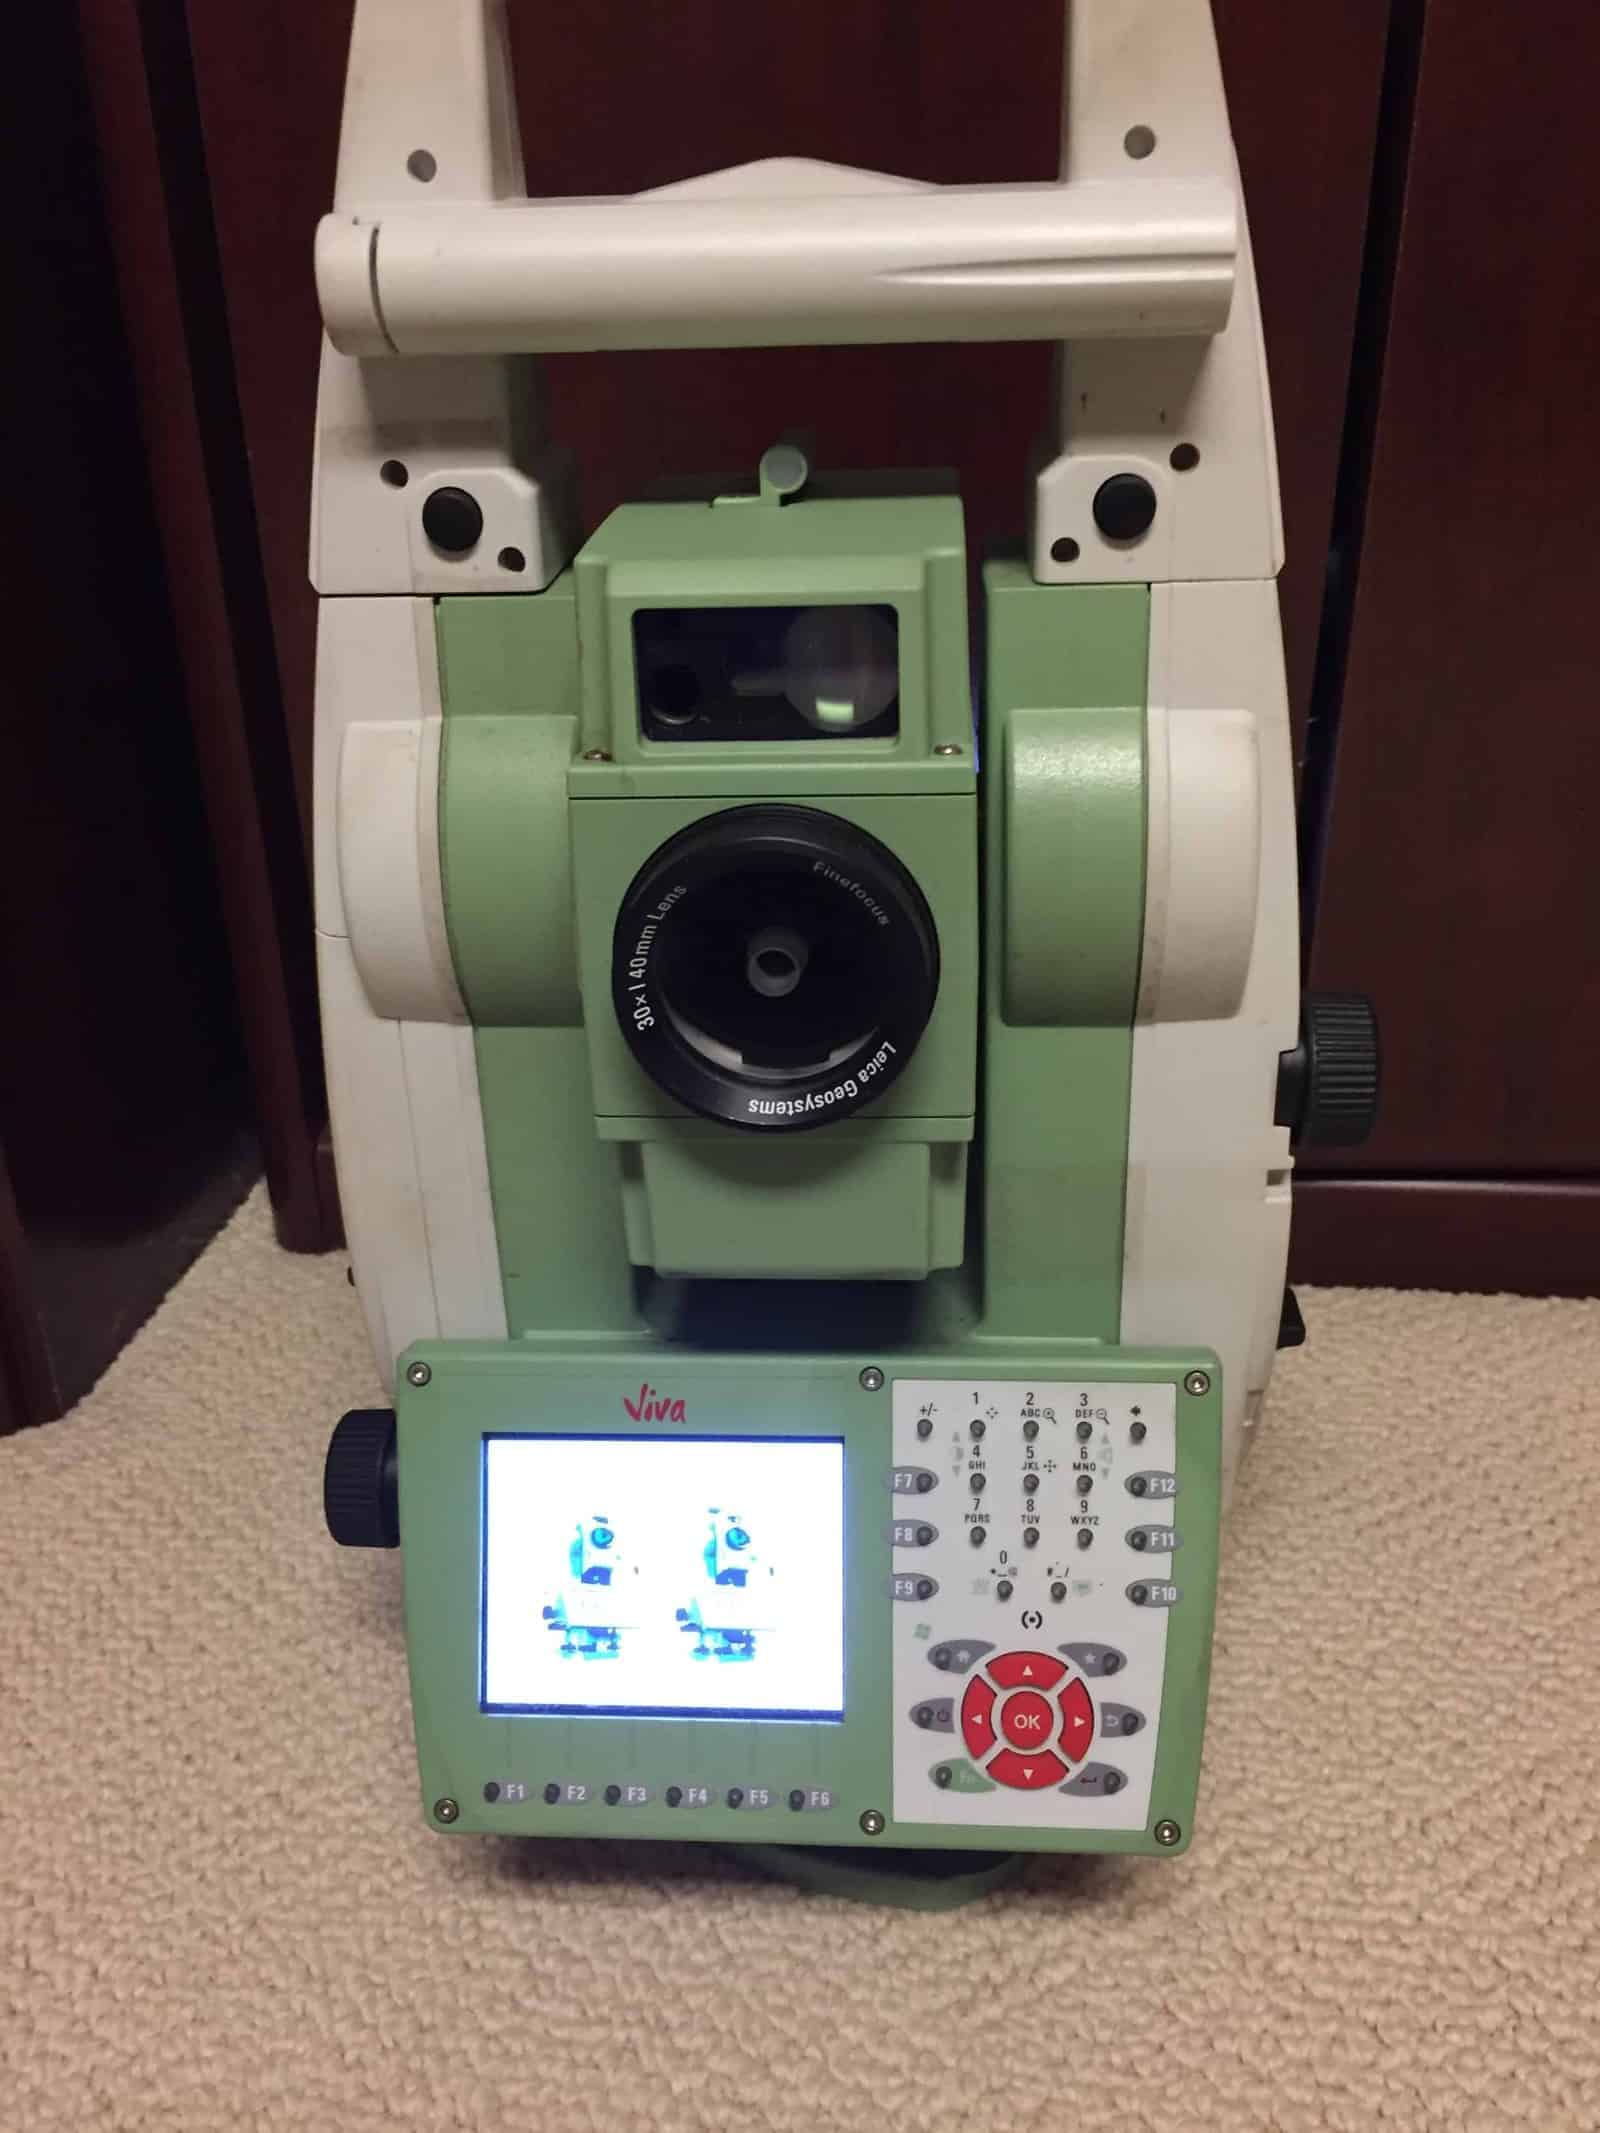 "TS15 I, 3"" (1.5 mgon) R1000 total station with 5 MP wide angle camera,  PowerSearch, automatic target aiming, reflectorless R1000 EDM, electronic  guide light ..."